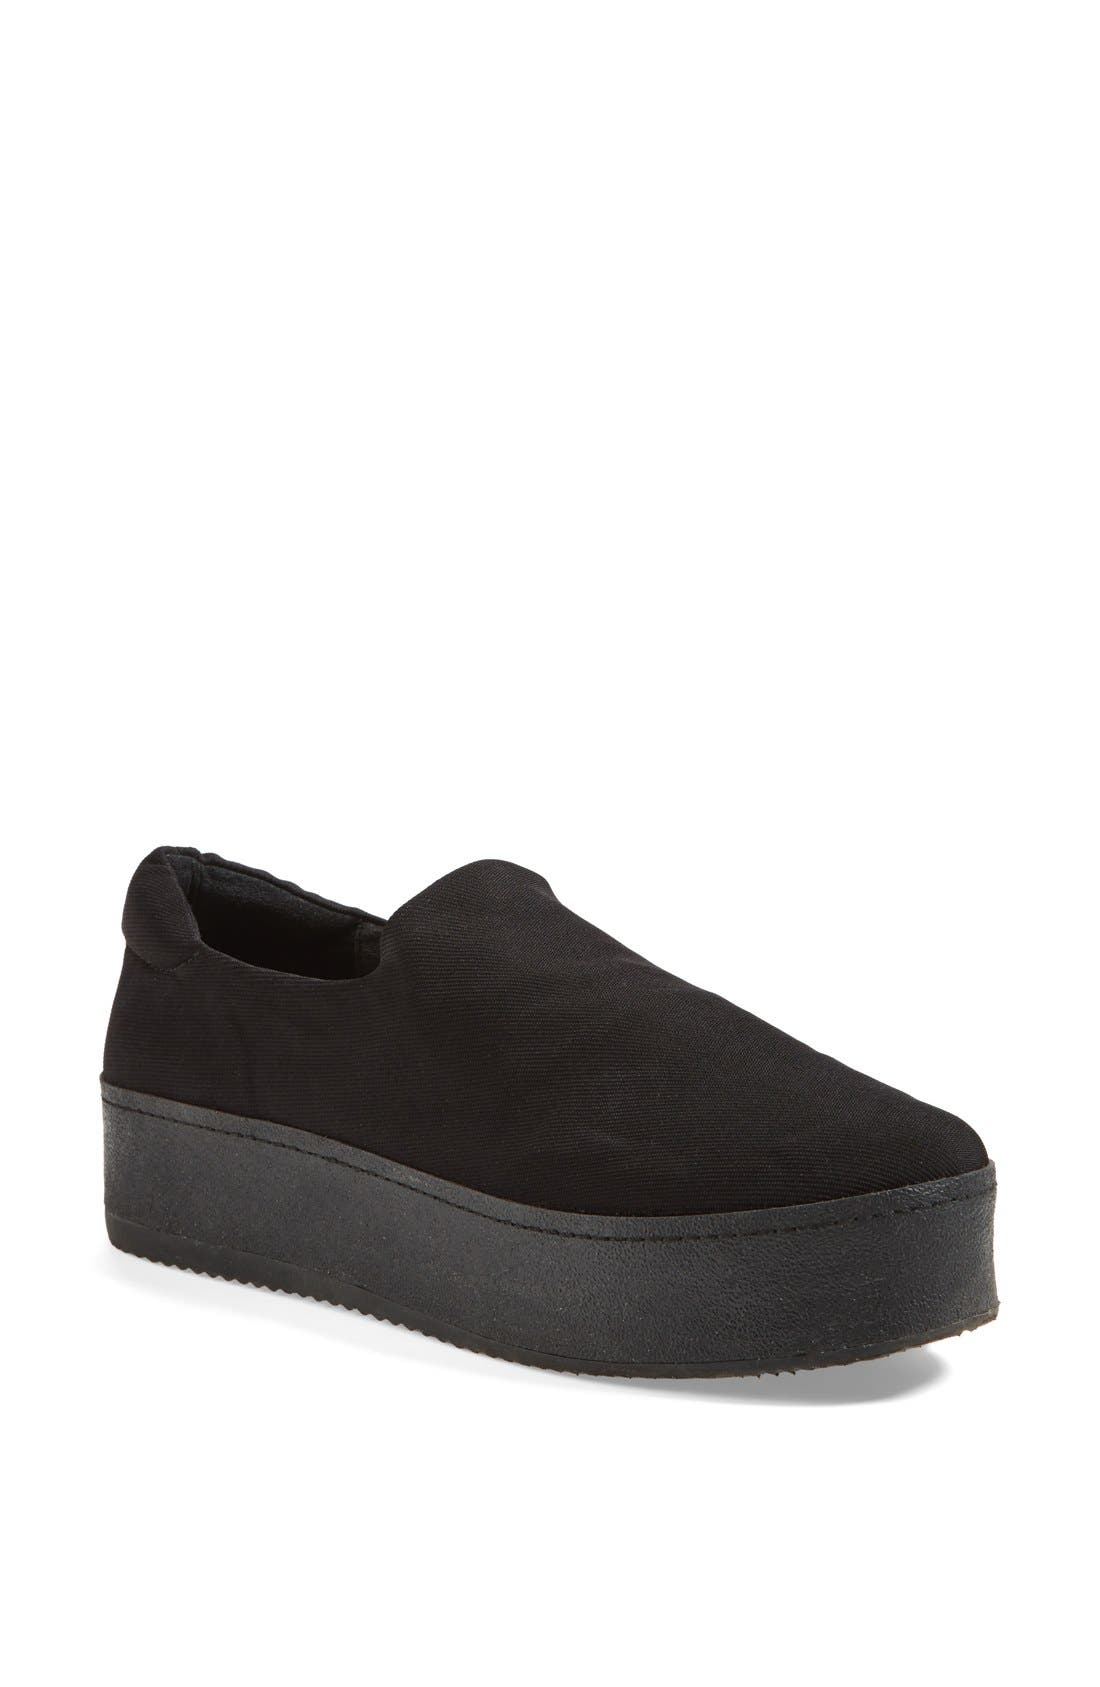 Main Image - Opening Ceremony 'Grunge' Slip-On Platform Sneaker (Women)